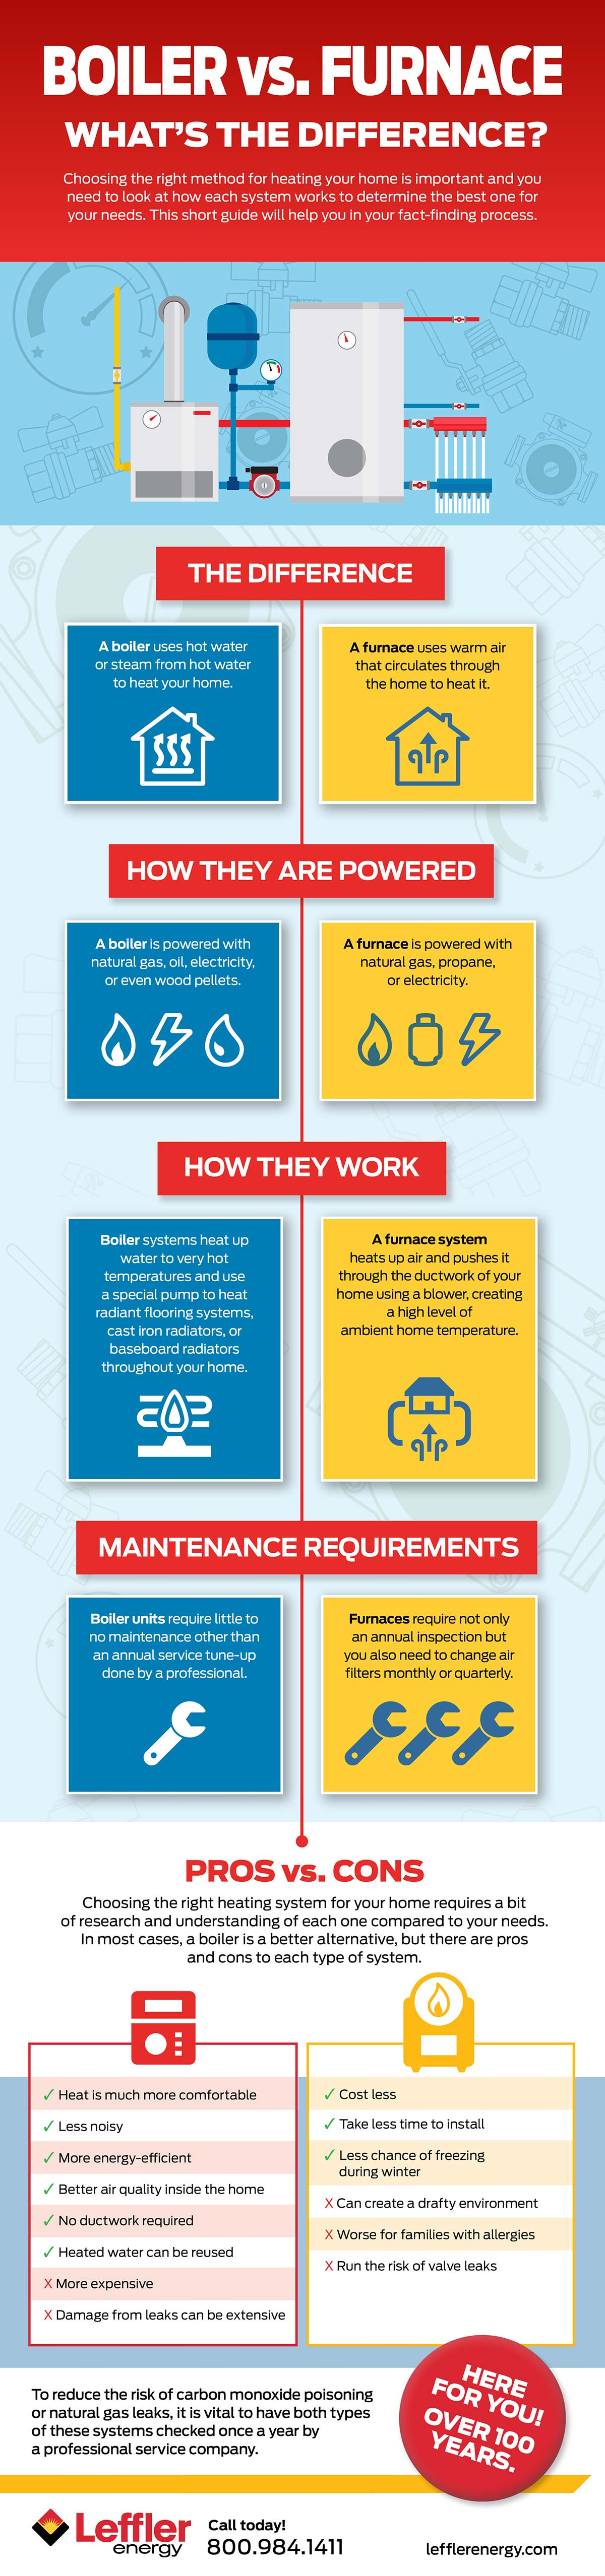 Boiler Vs Furnace: what's the difference Infographic